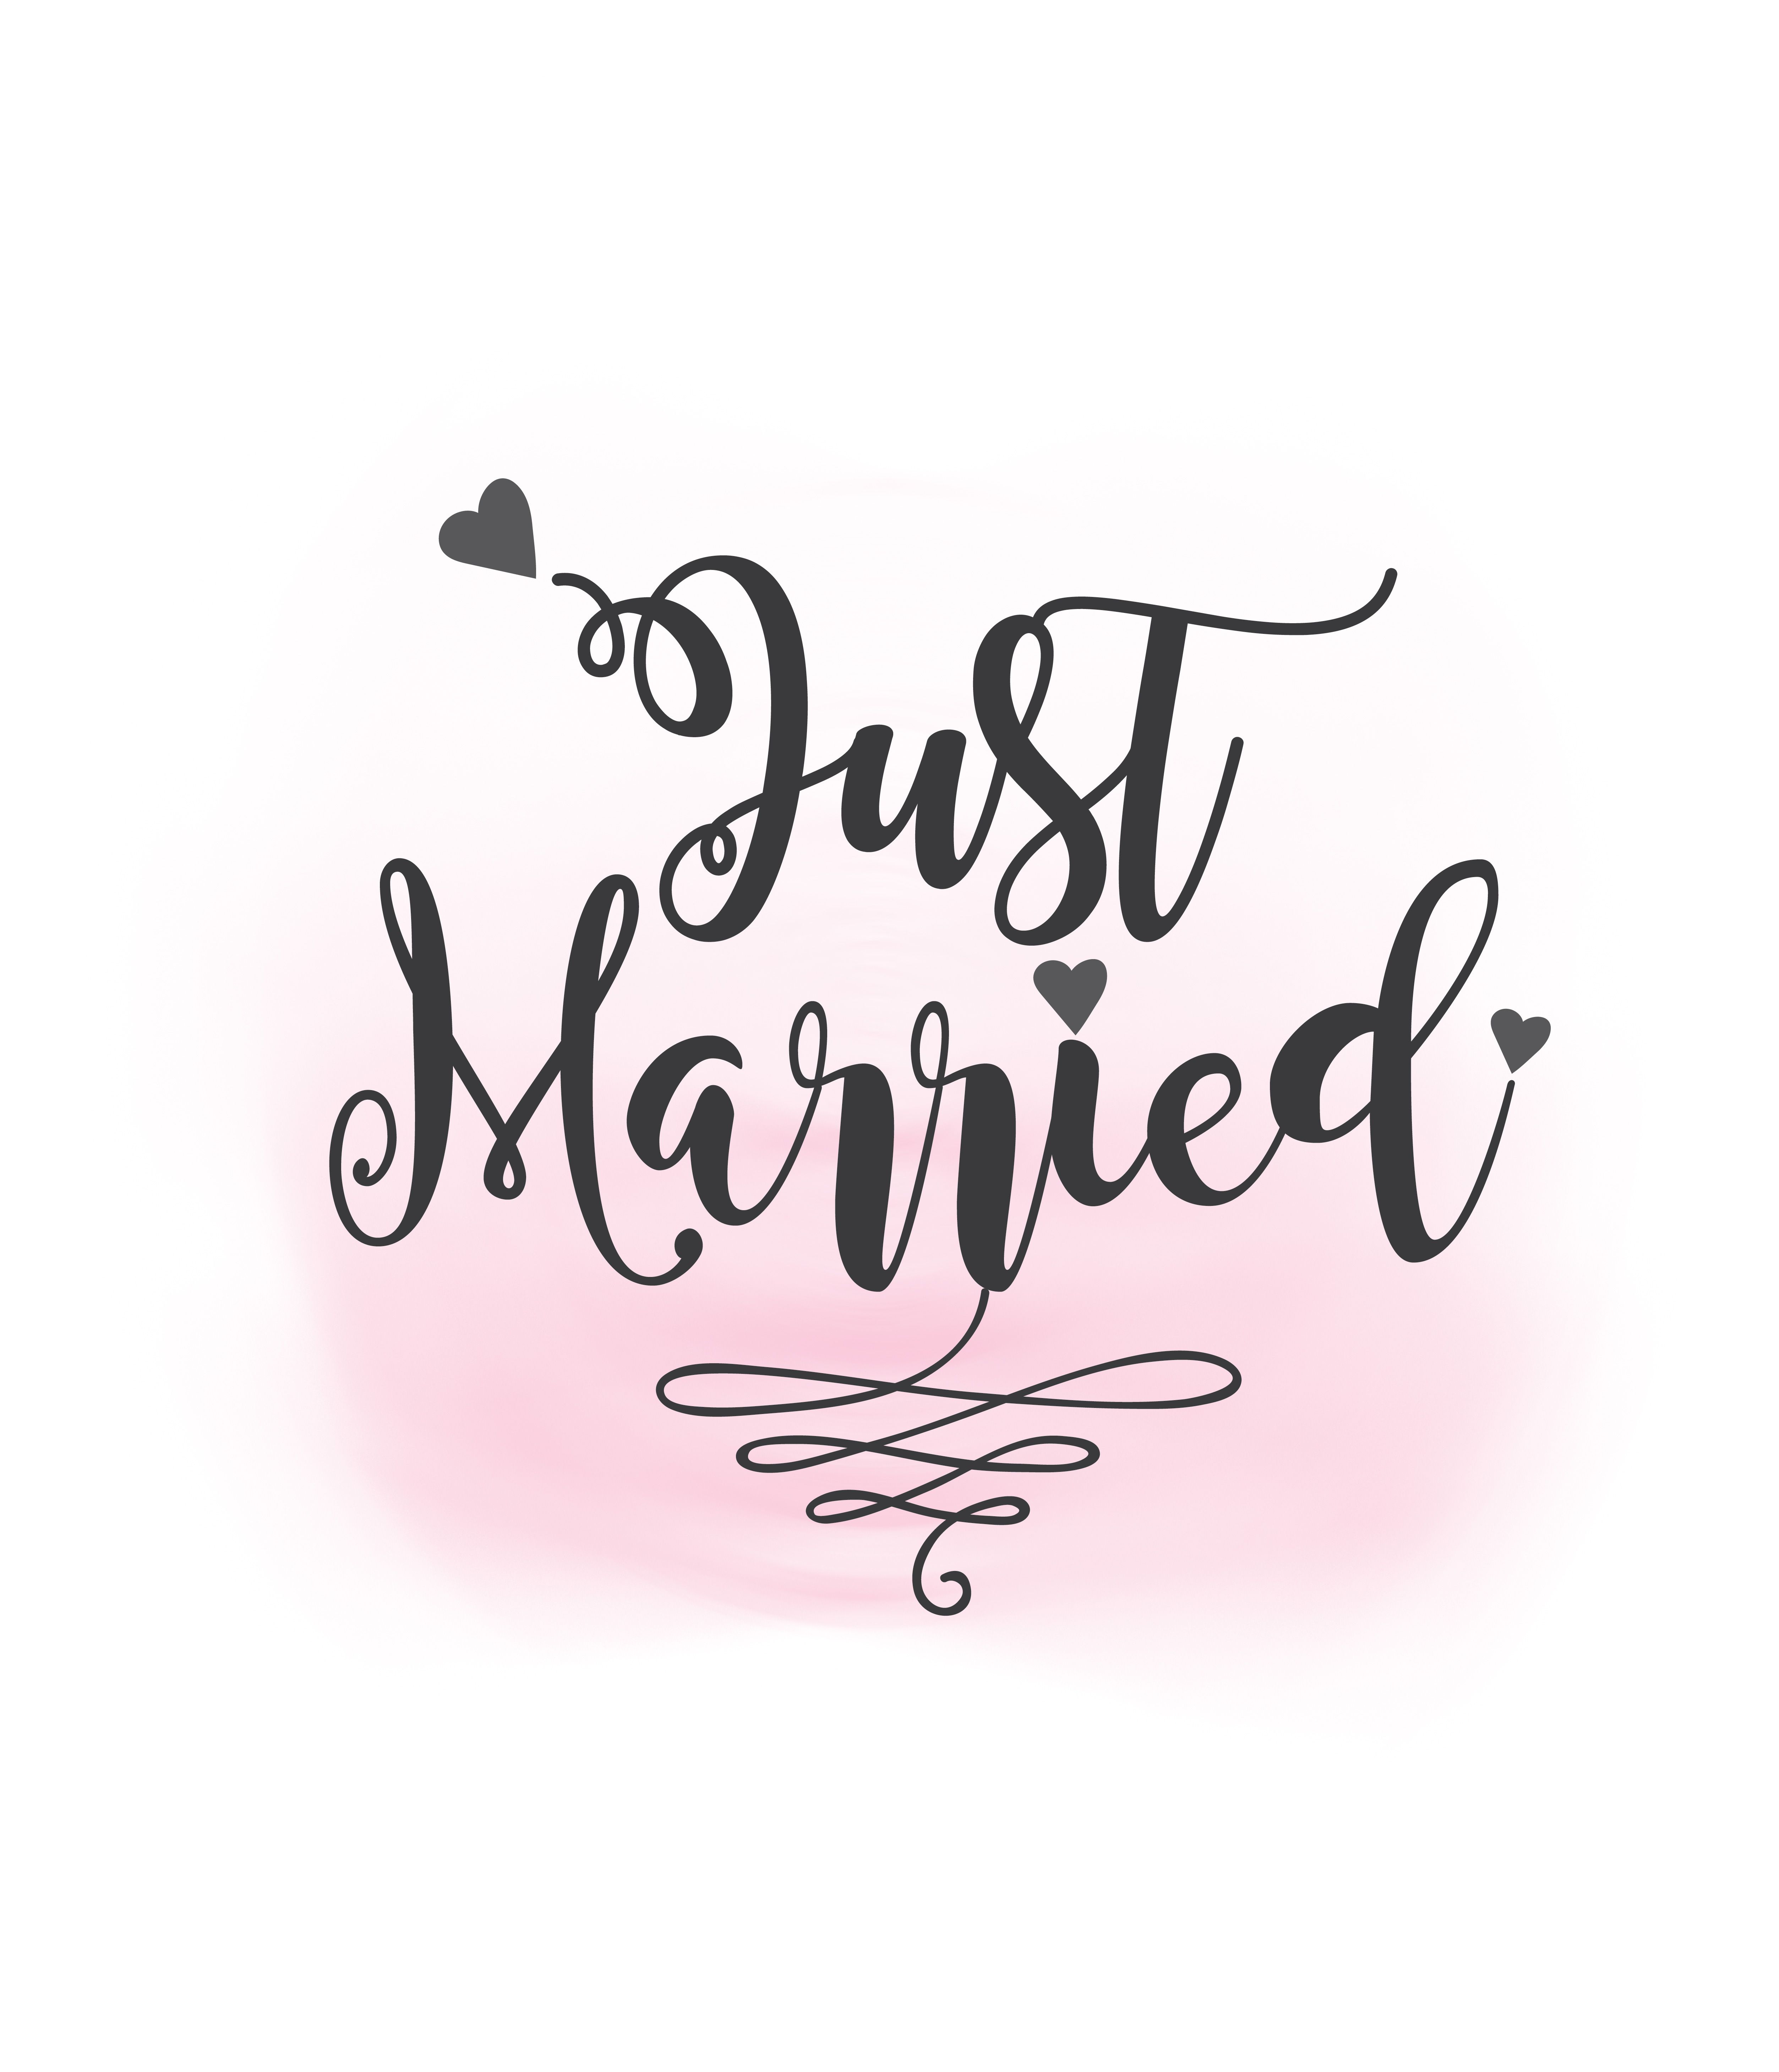 Just Married Svg Clipart Wedding Annuncment Just Married Vector Wedding Sign Printable Clipart Ai Eps Svg Png Jpeg Cr Clip Art Just Married Printable Signs